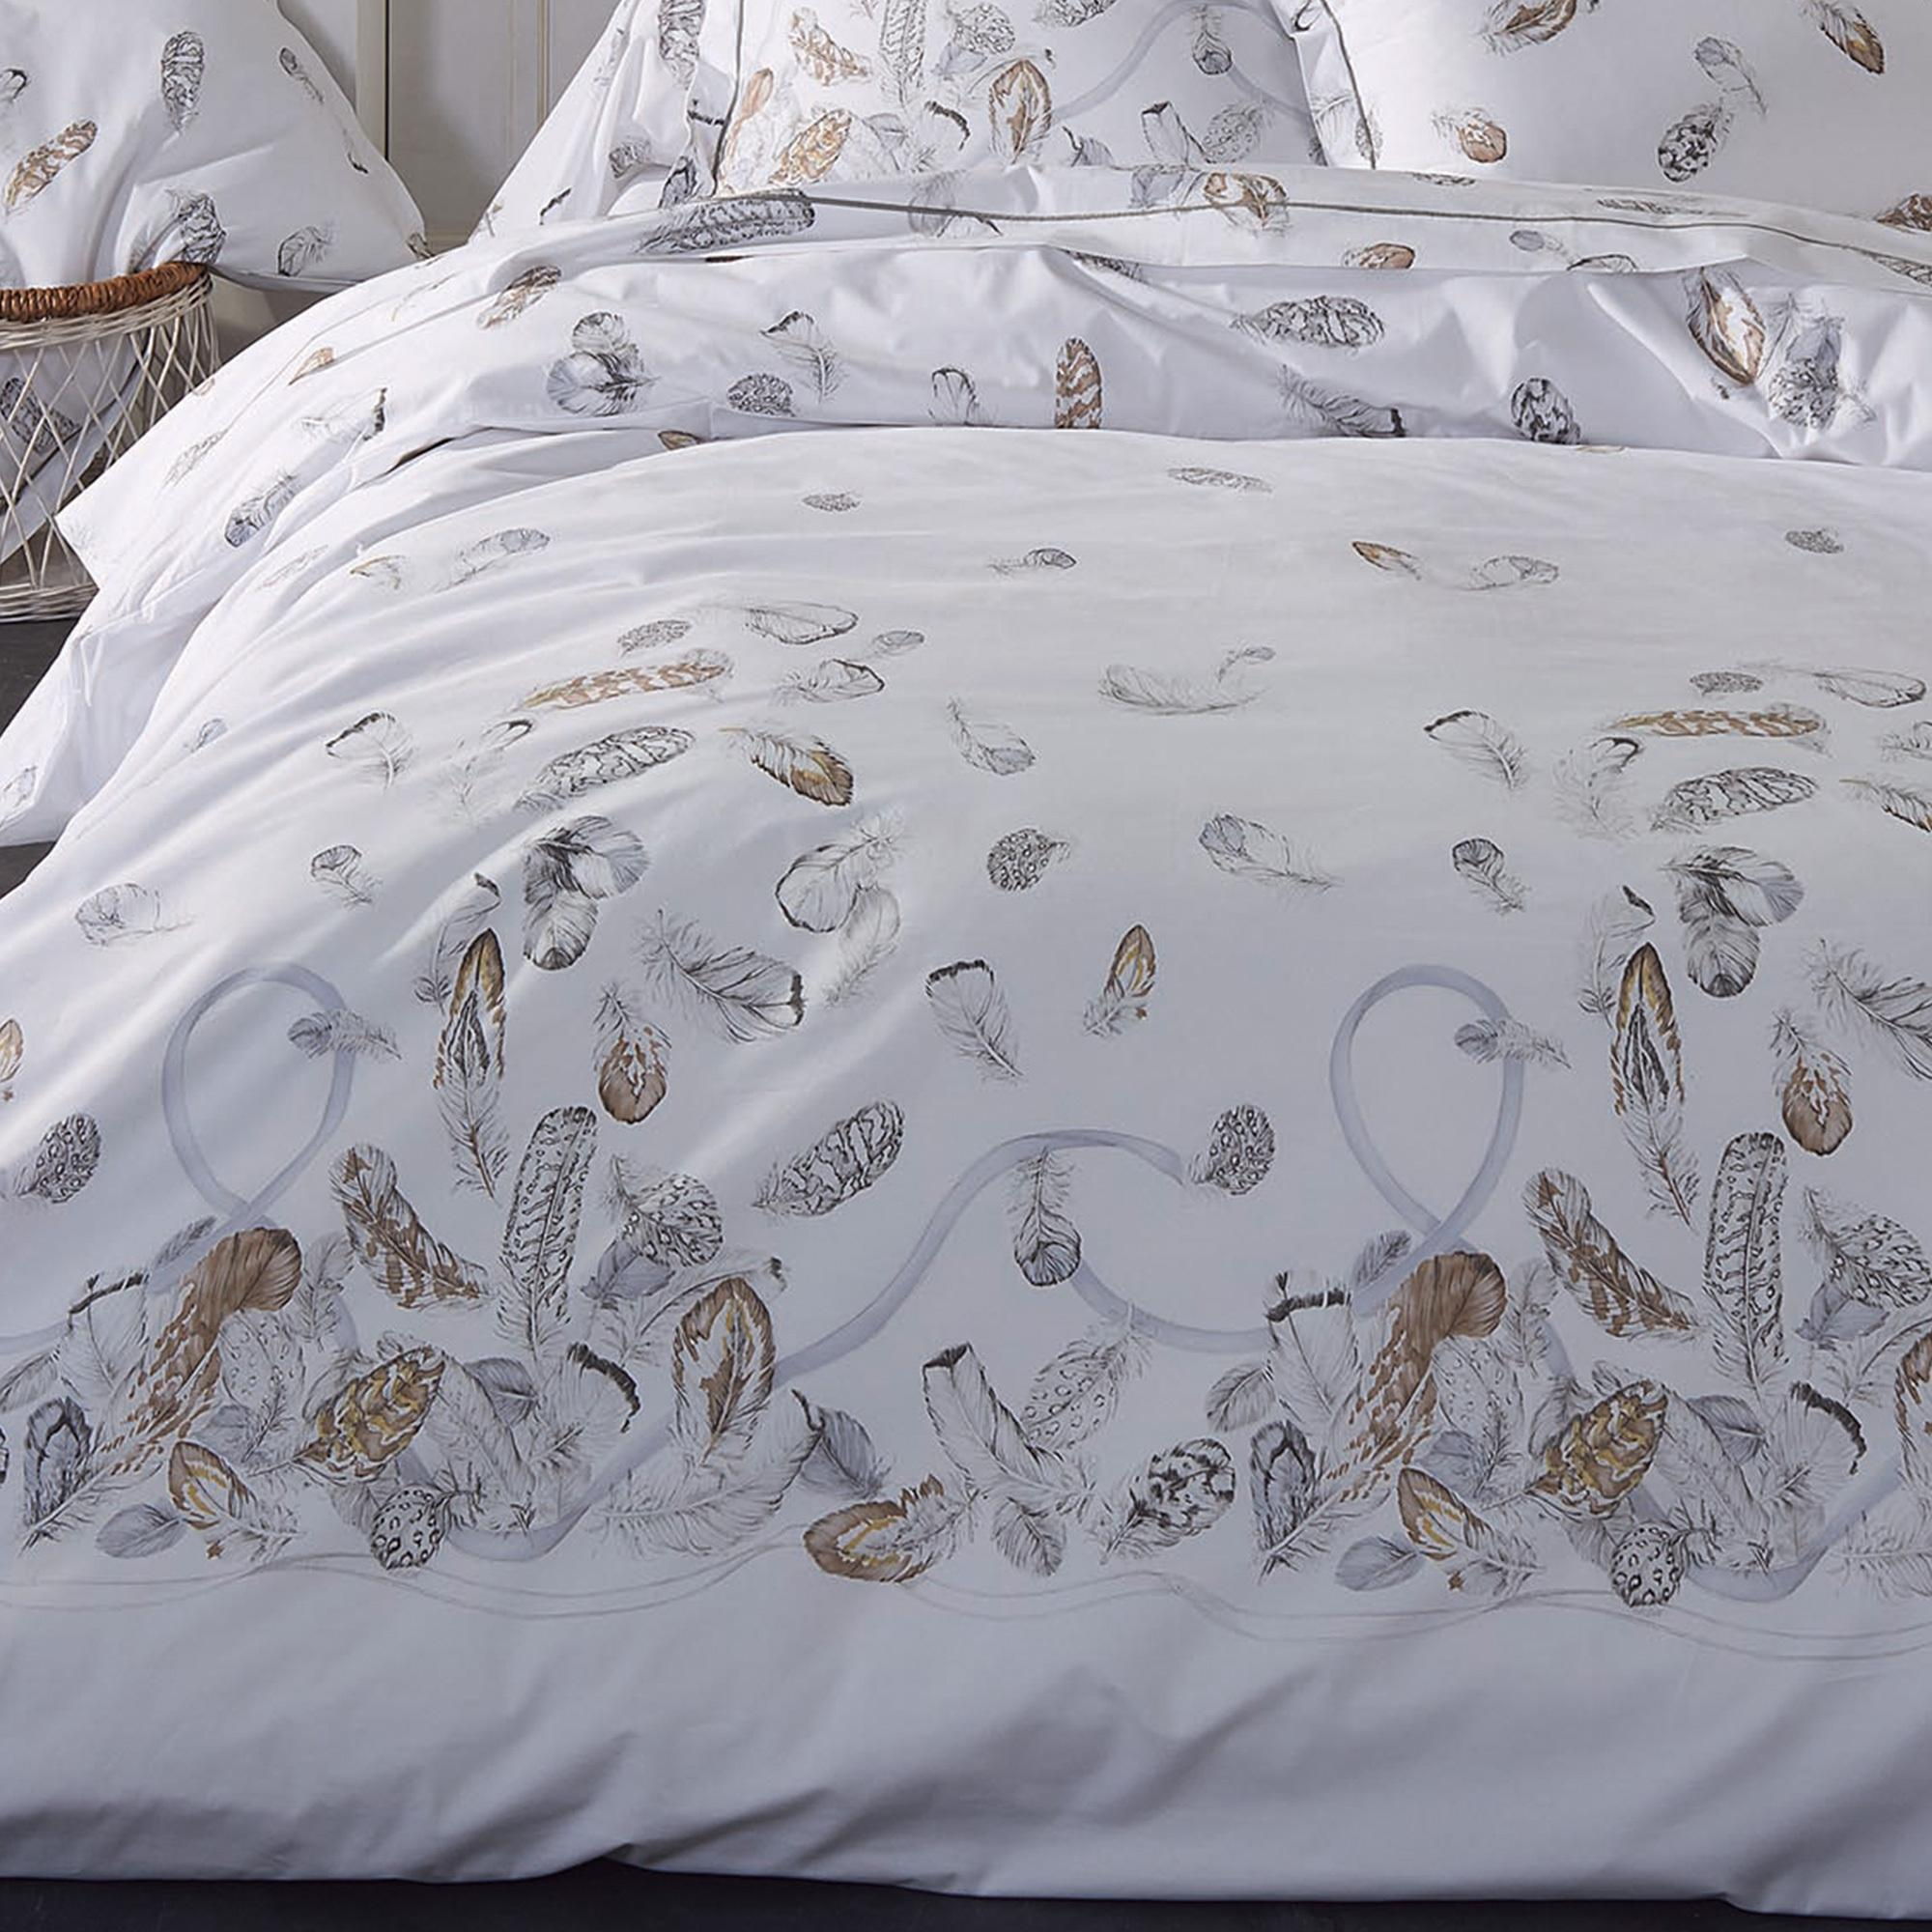 housse de couette 300x240 percale pur coton plumes ebay. Black Bedroom Furniture Sets. Home Design Ideas